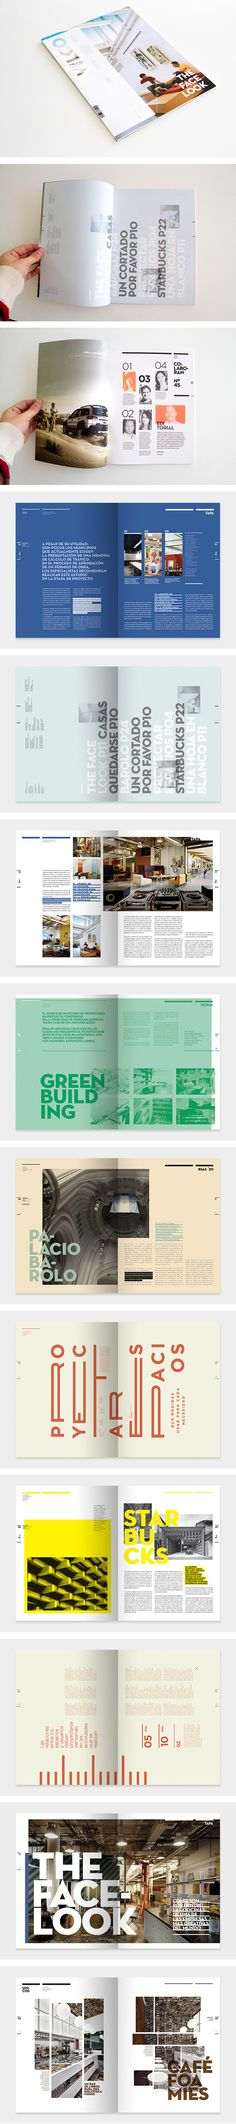 revista de arquitectura #brochure #magazine #print #editorial #design